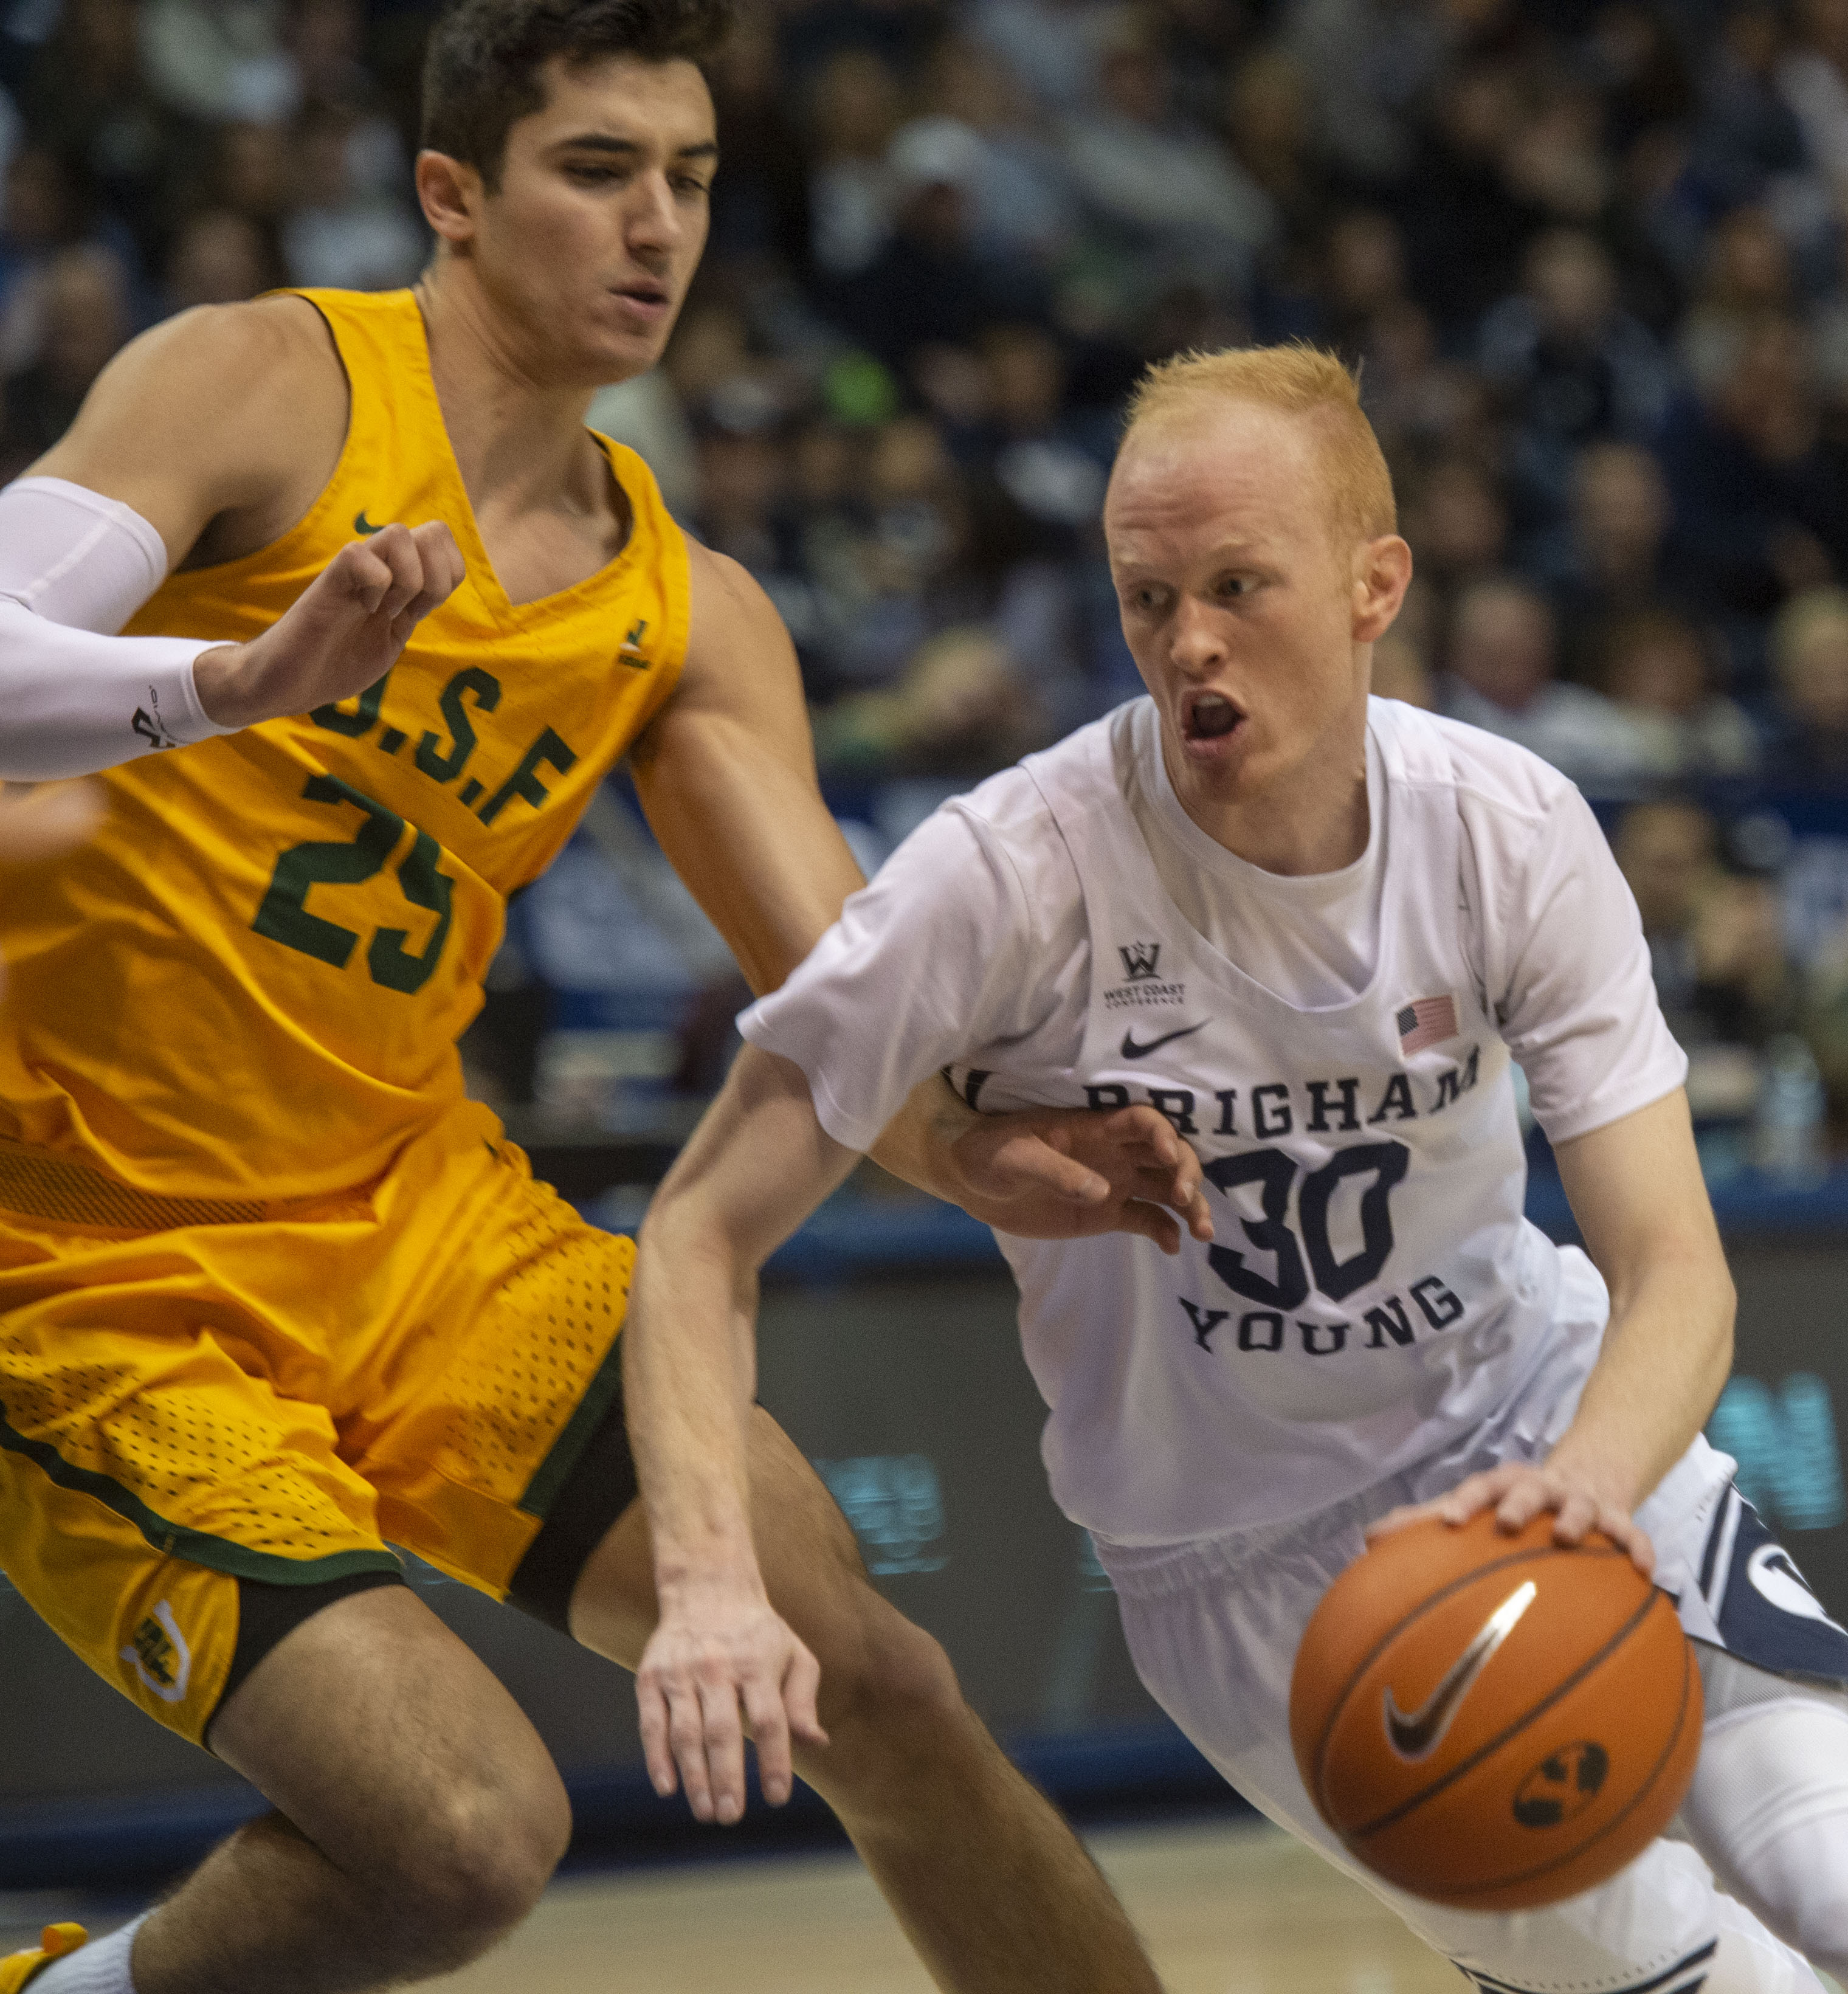 (Rick Egan  |  The Salt Lake Tribune)      Brigham Young Cougars guard TJ Haws (30) takes the ball up the middle, as San Francisco Dons guard Jordan Ratinho (25), in WCC basketball action at the Marriott Center, Thursday, February 21, 2018.